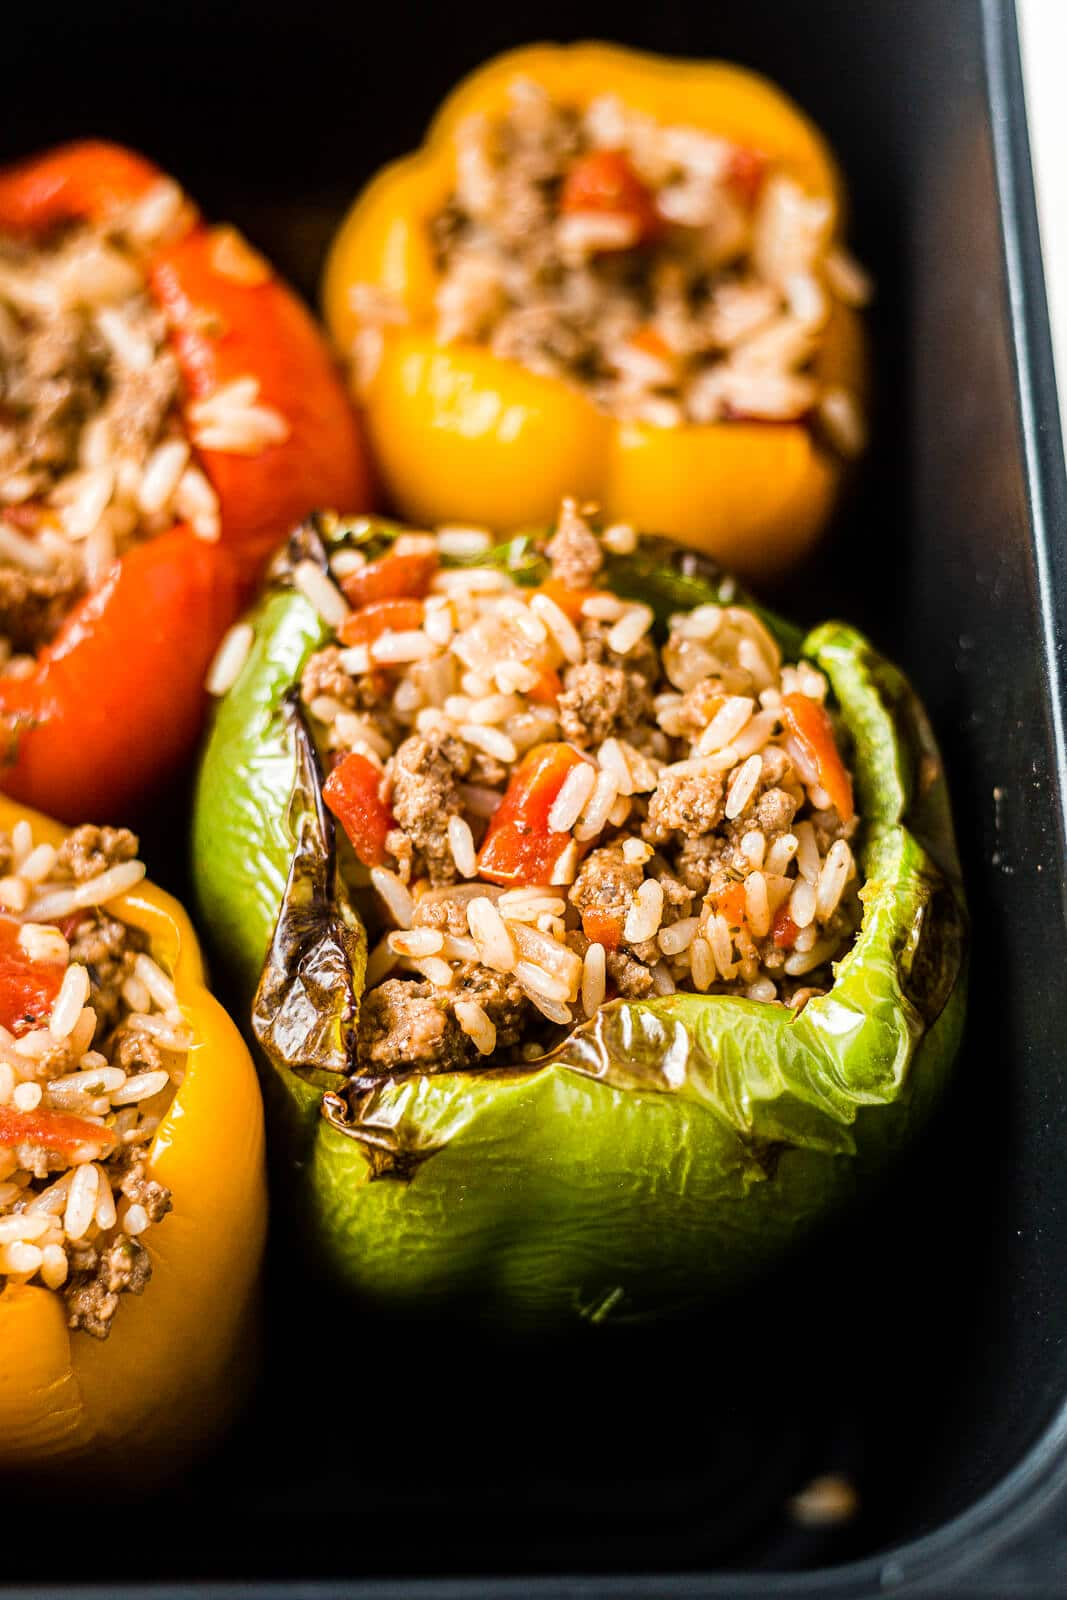 air fryer stuffed peppers in the basket with charred edges right before being topped with cheese